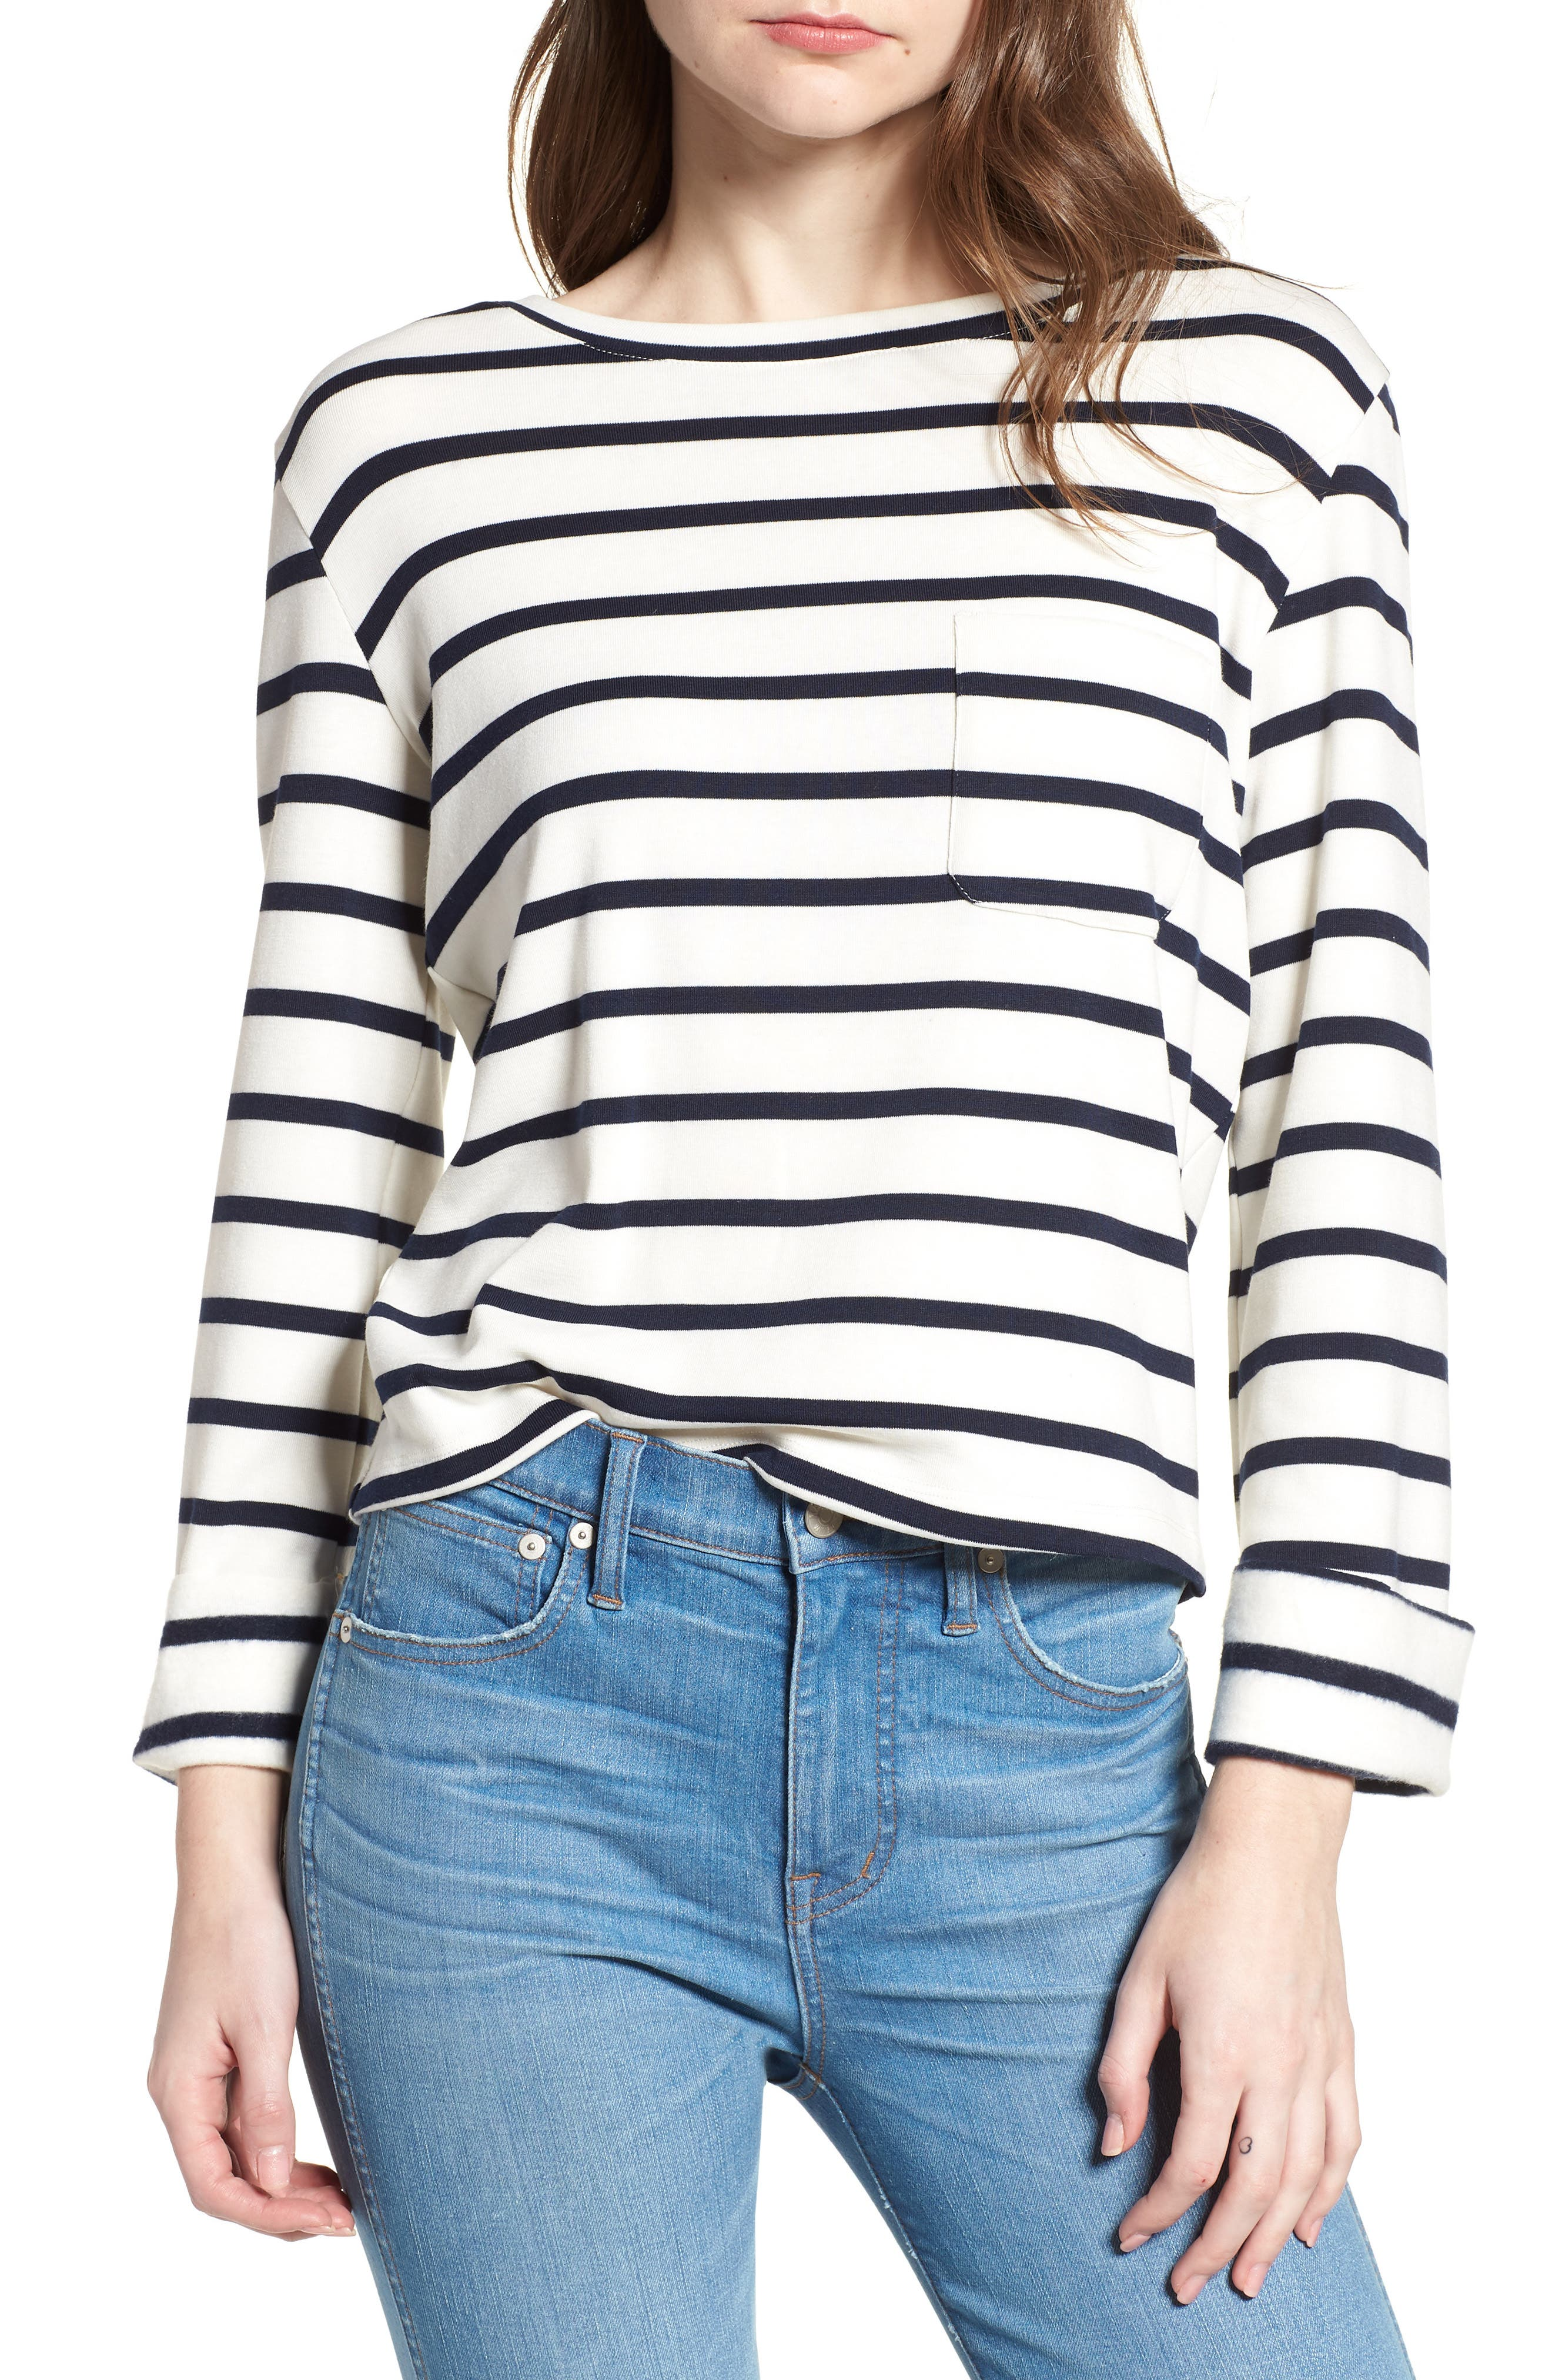 Bishop + Young Stripe Lace-Up Back Top,                             Main thumbnail 1, color,                             011